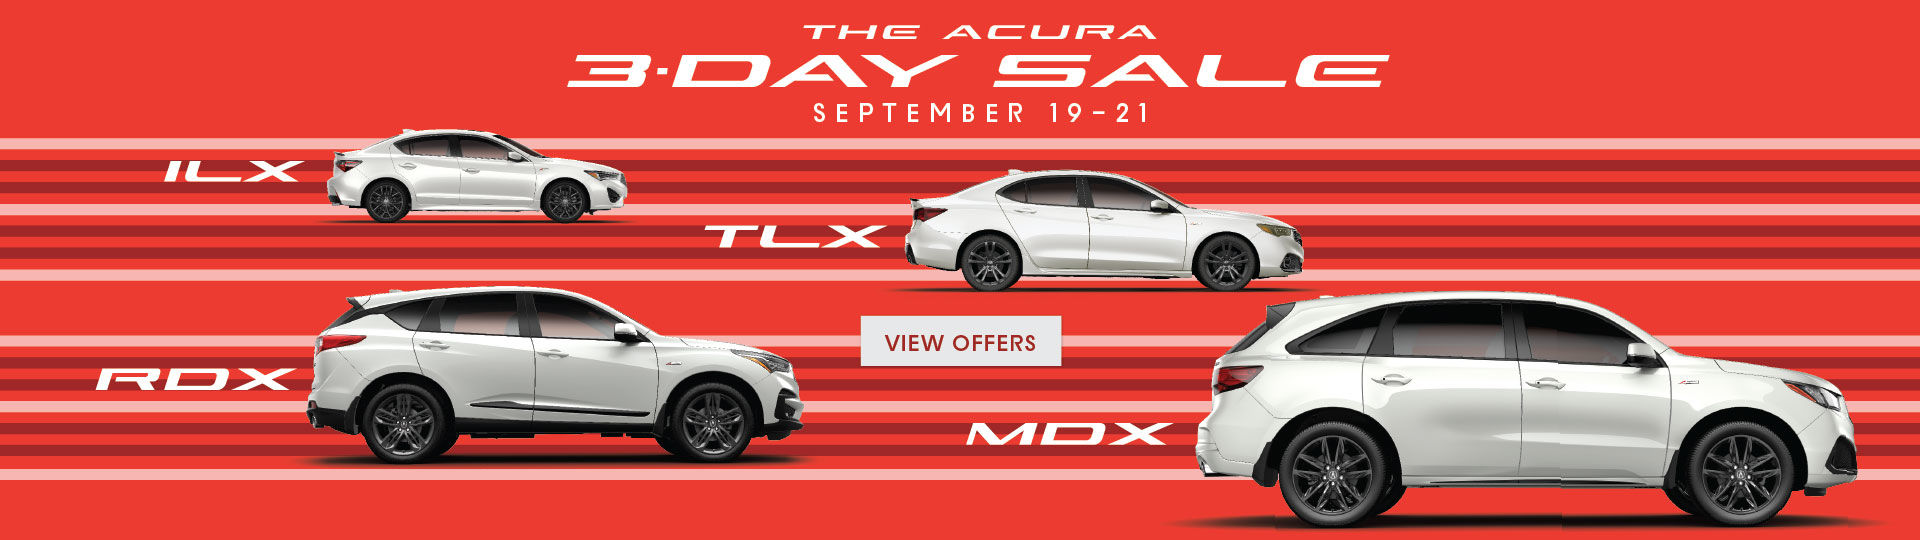 The Acura 3 Day Sale | SEPT 19 - 21